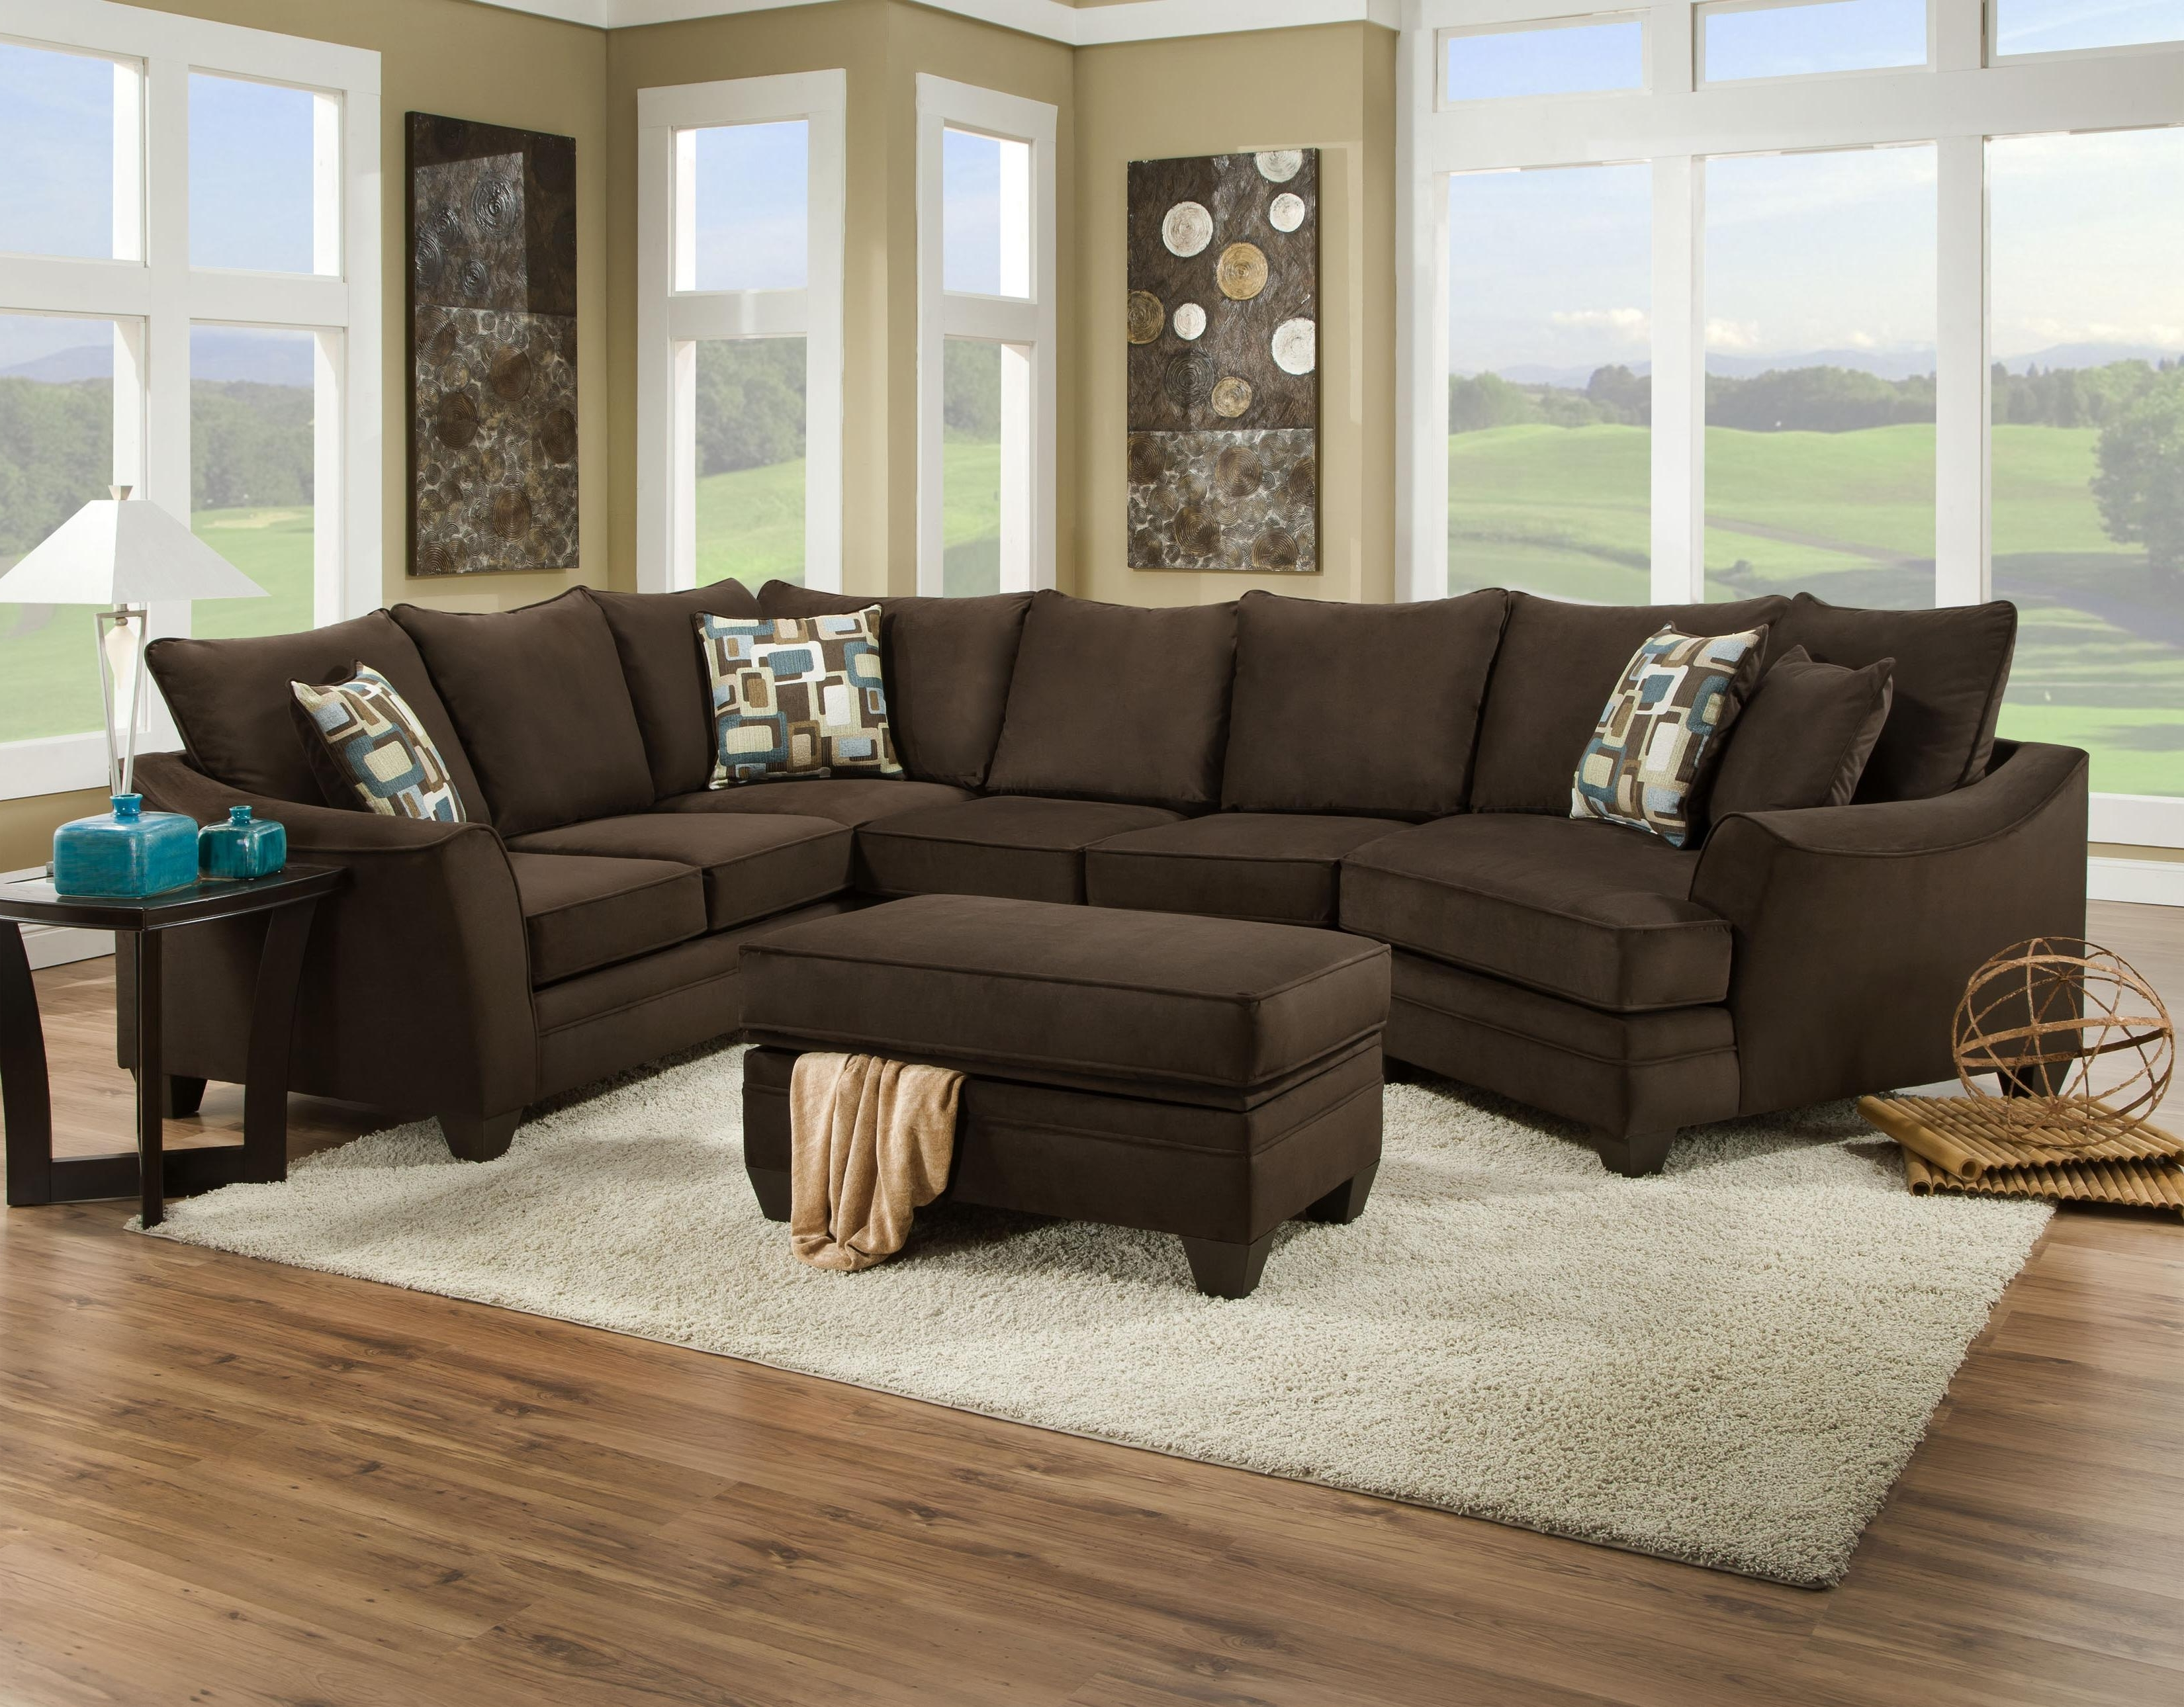 American Furniture 3810 Sectional Sofa That Seats 5 With Left Side Regarding Most Popular Greenville Nc Sectional Sofas (View 13 of 15)